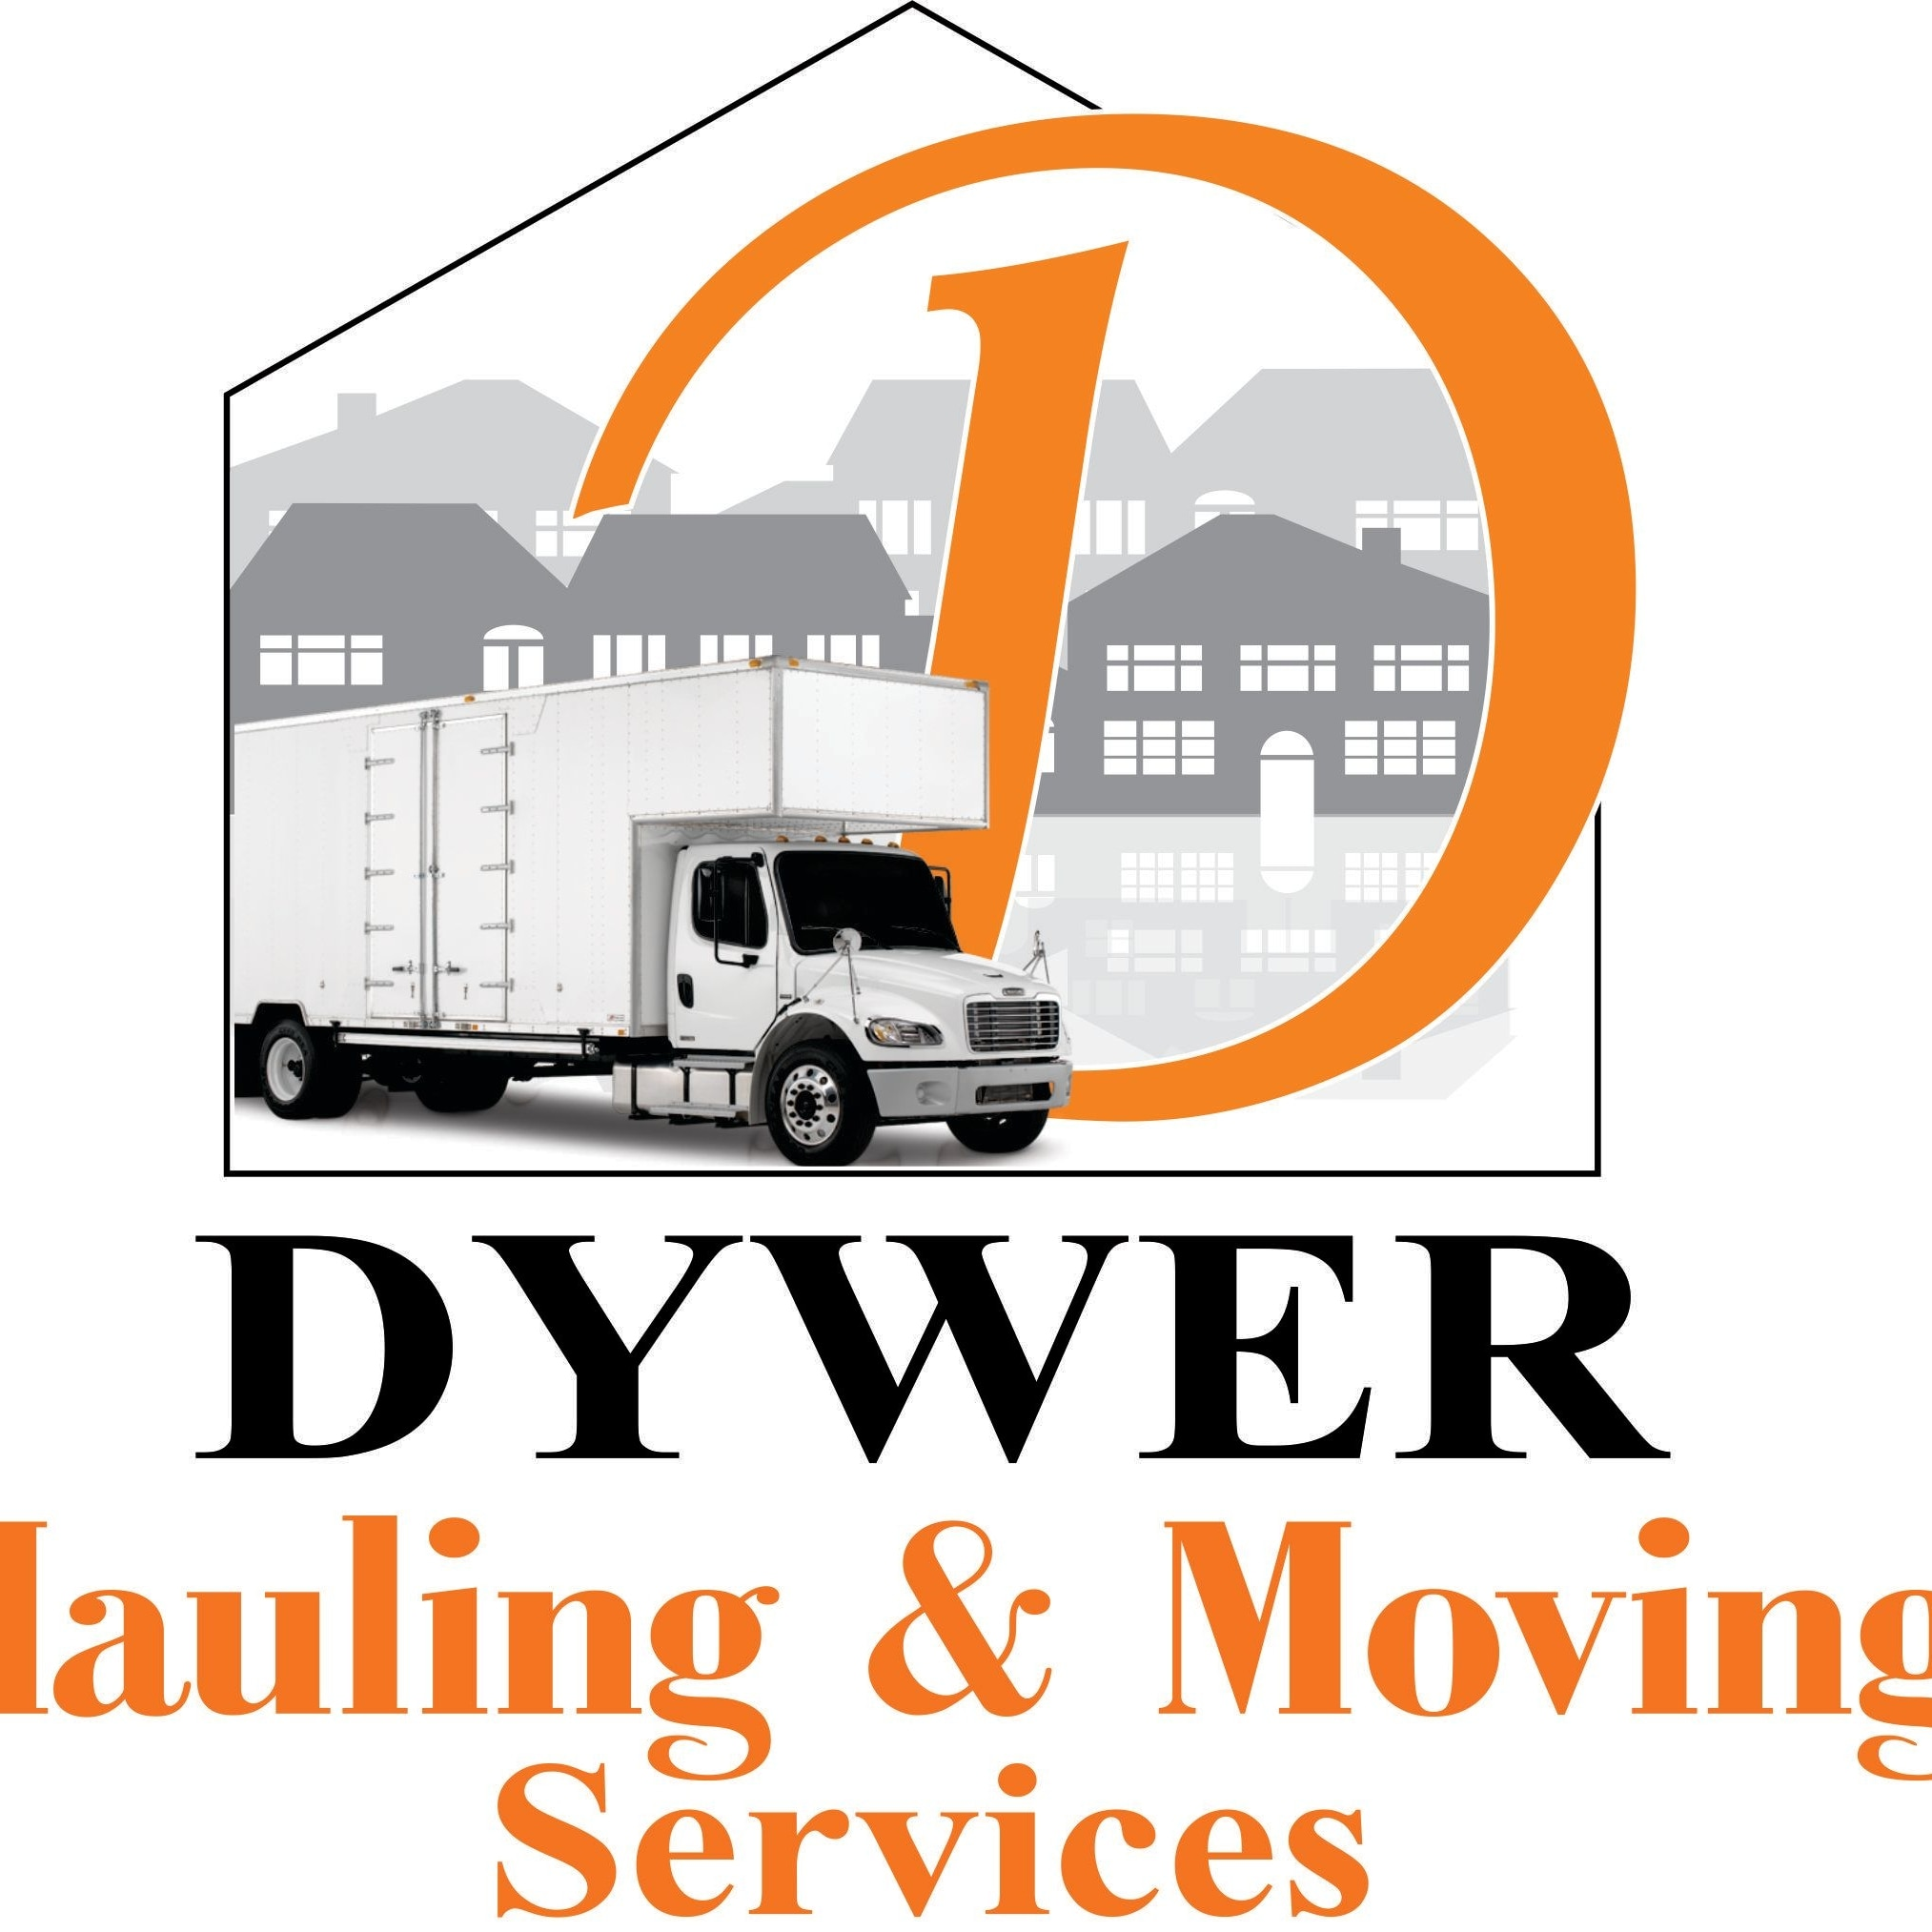 Dywer Hauling & Moving Service logo